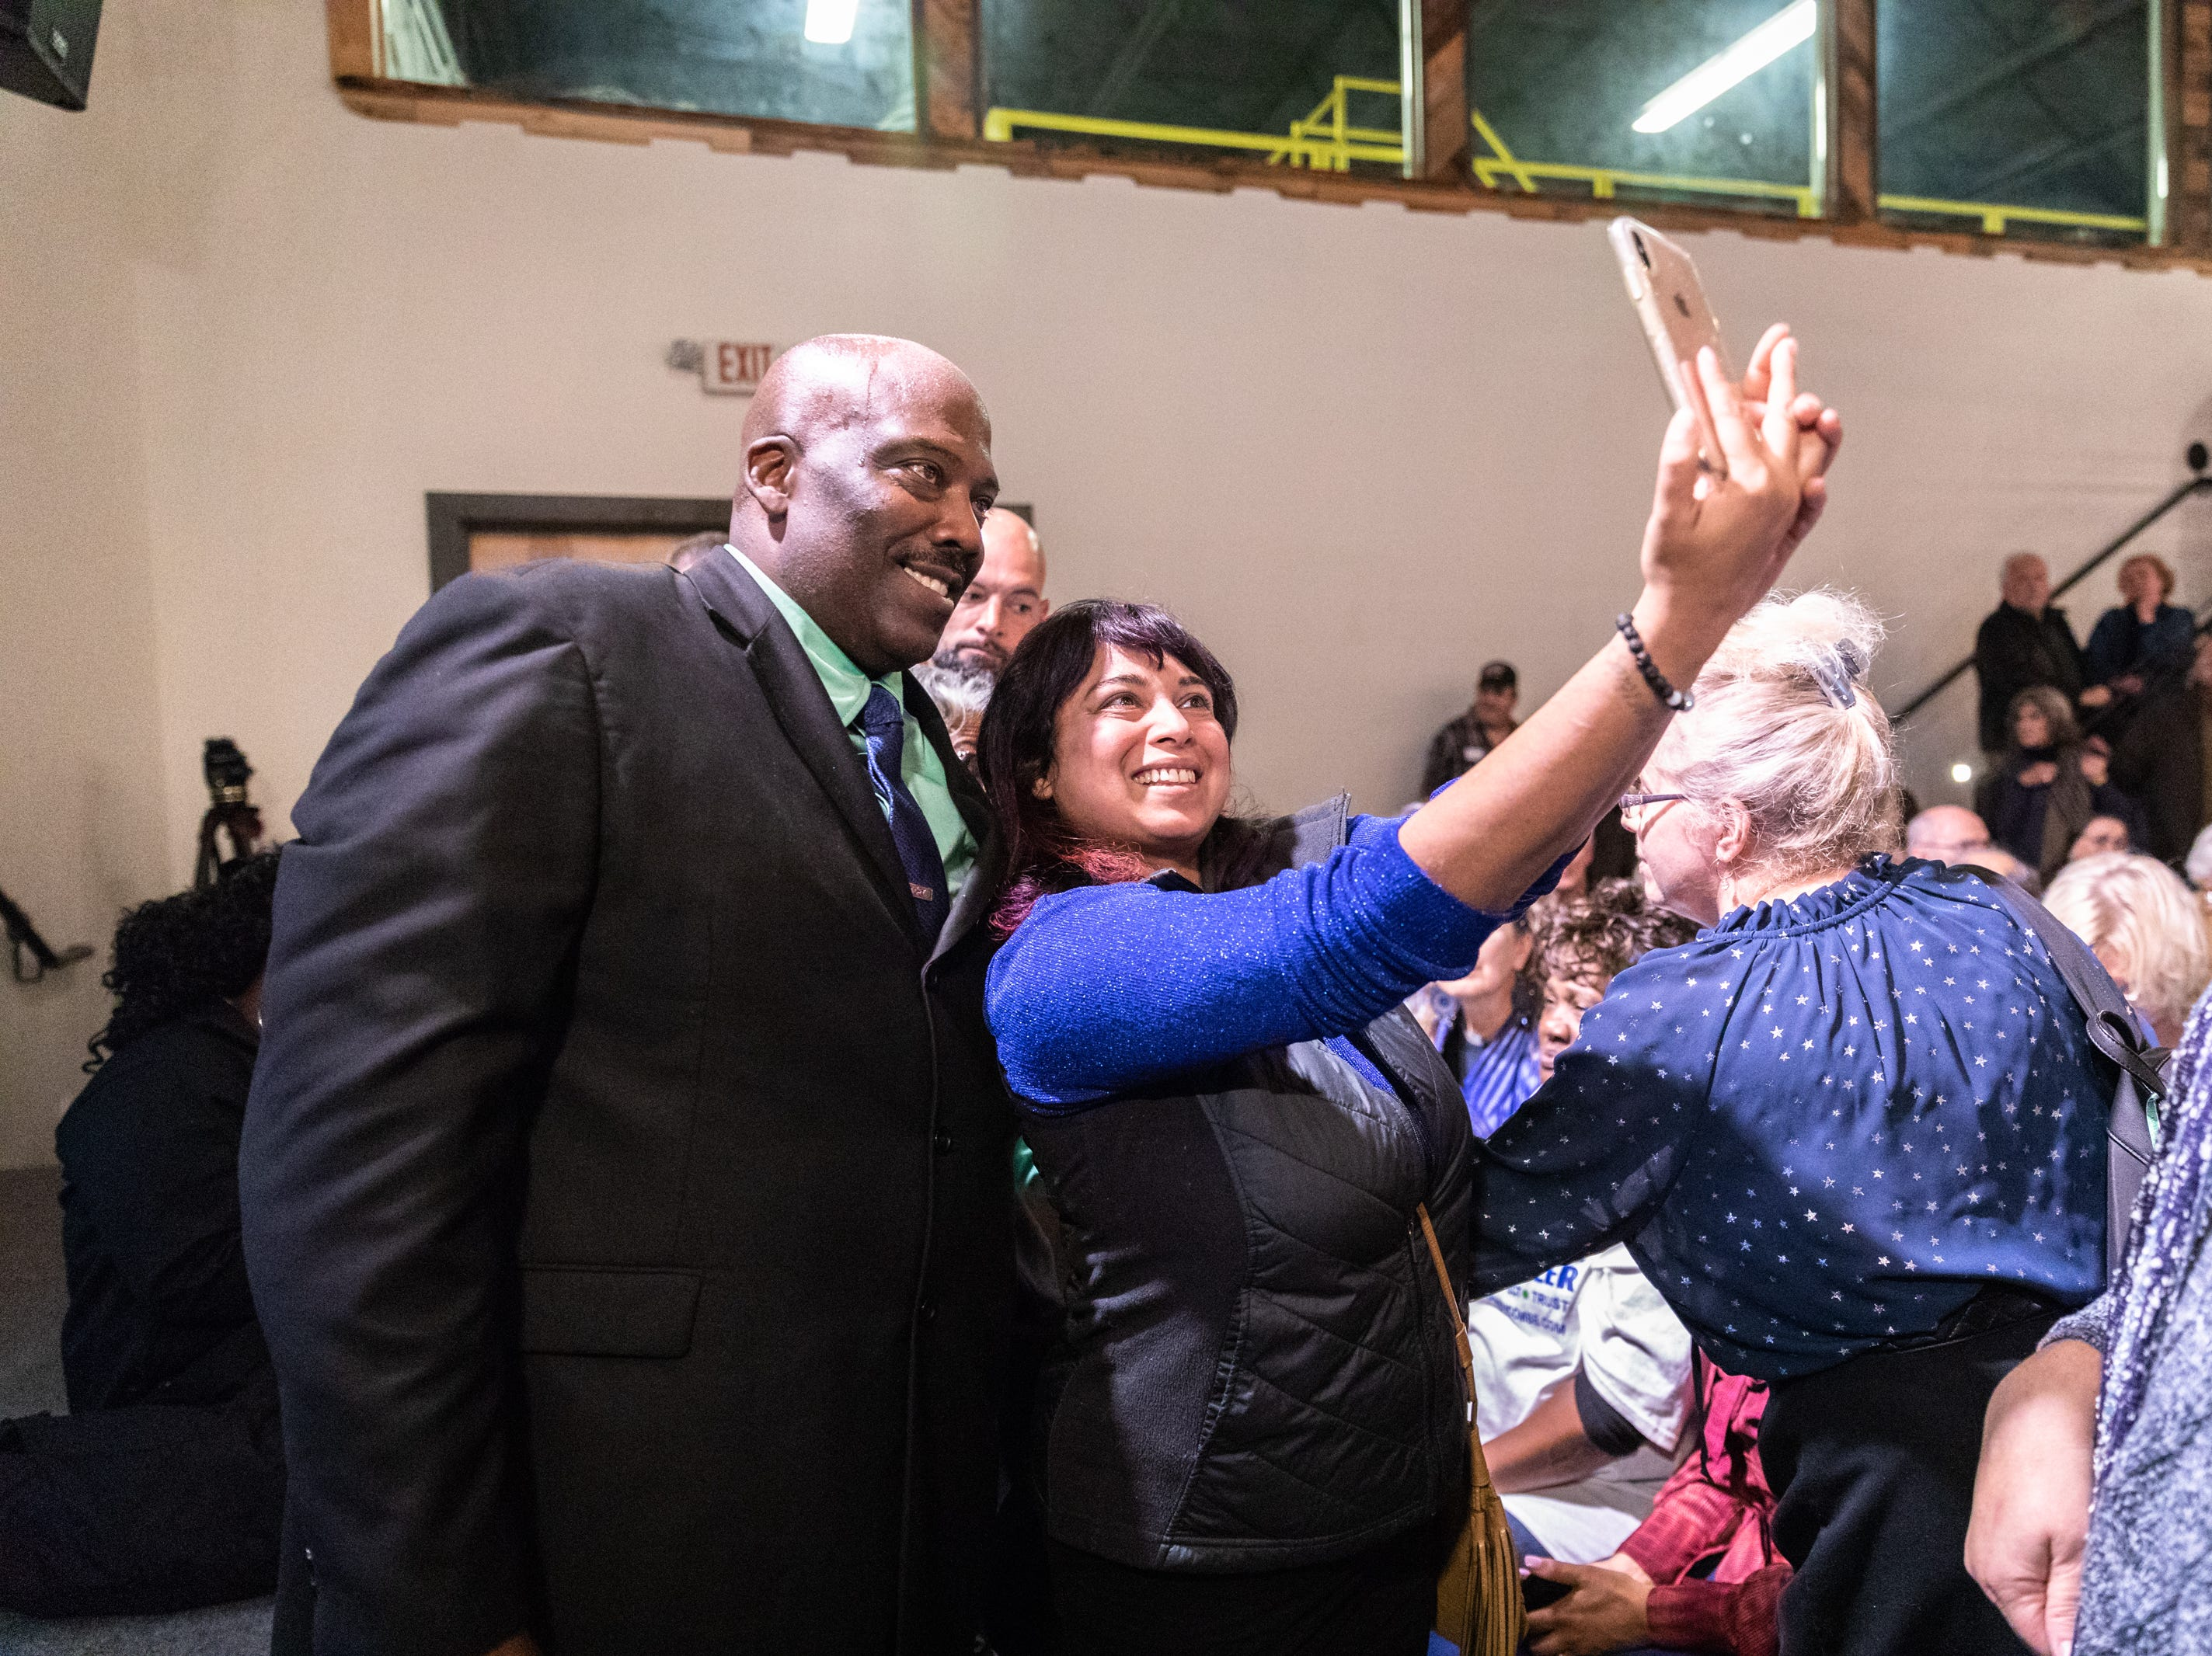 Quentin Miller, newly elected Buncombe County sheriff, poses for a cell phone photo with Pramela Thiagesan, of Asheville, at the Democratic Party election night party at Highland Brewing Nov. 6, 2018.